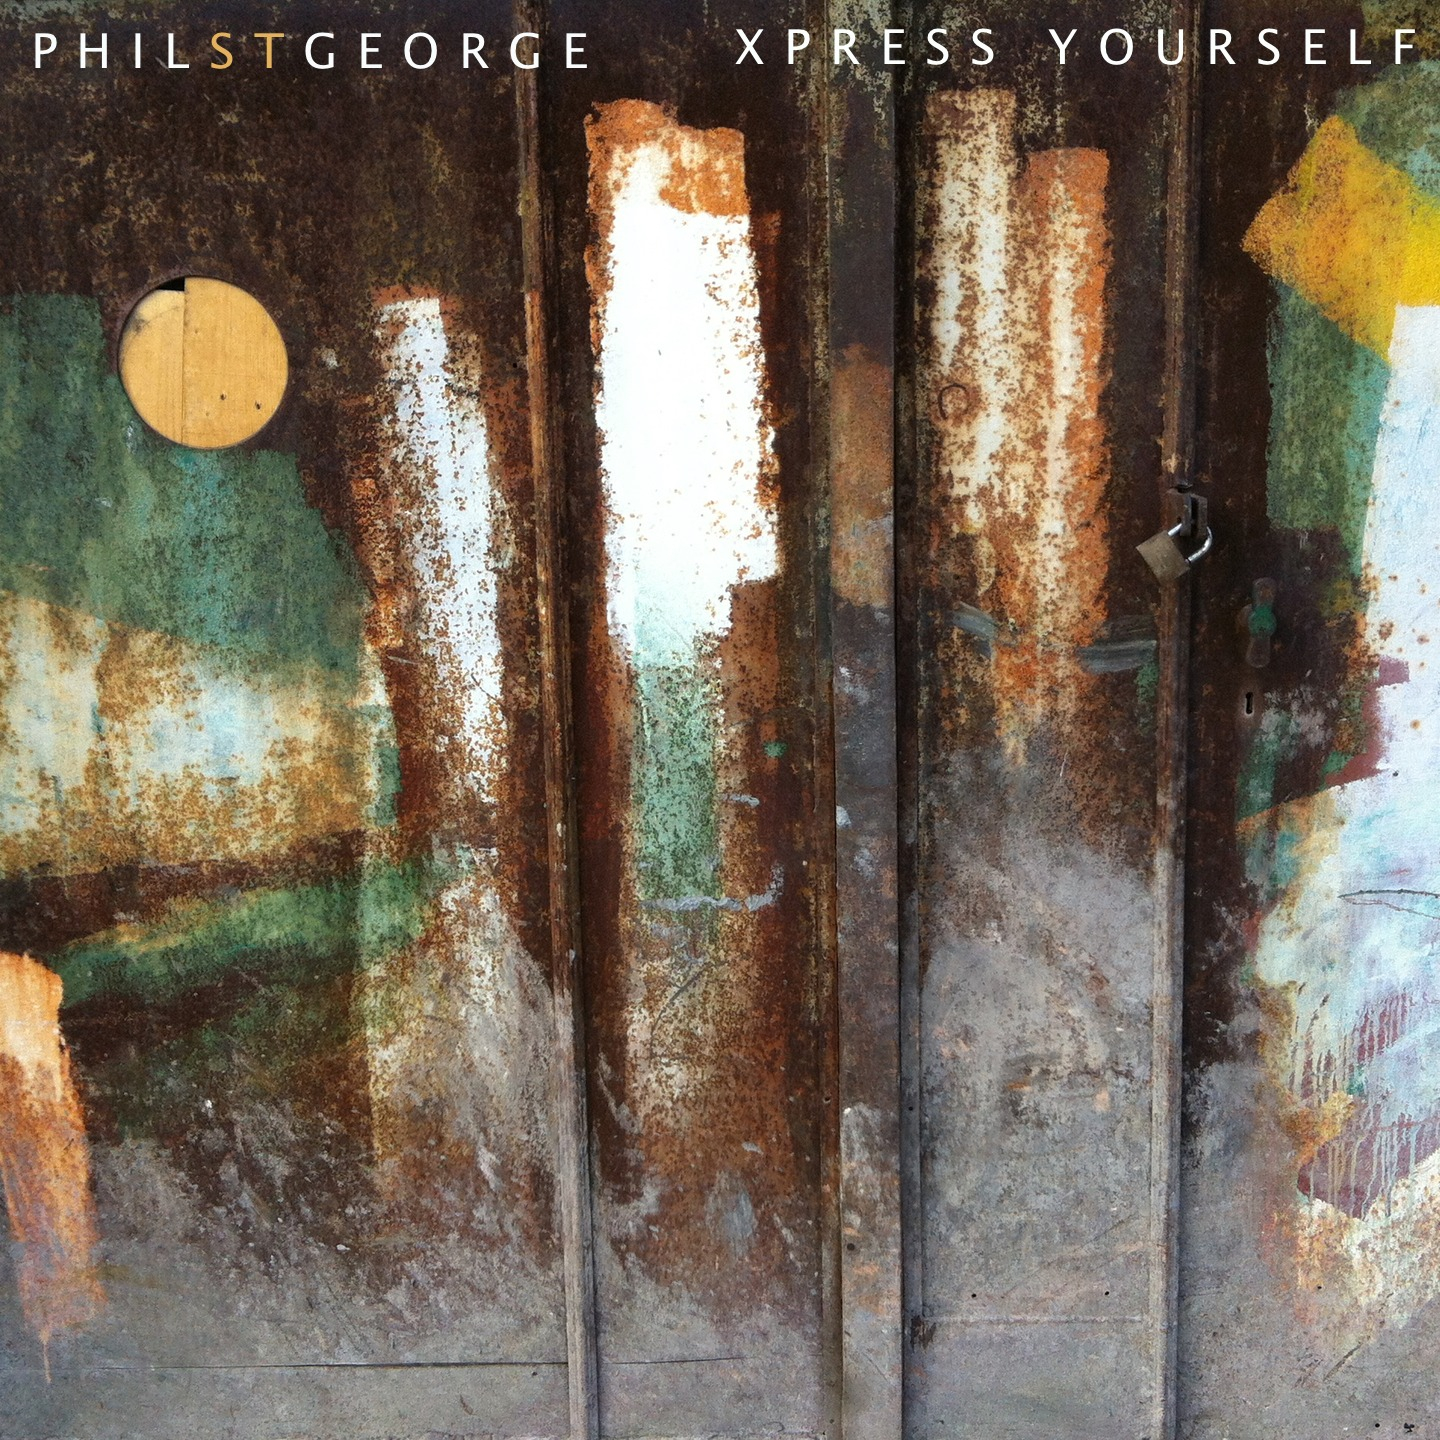 Phil St George - Xpress Yourself